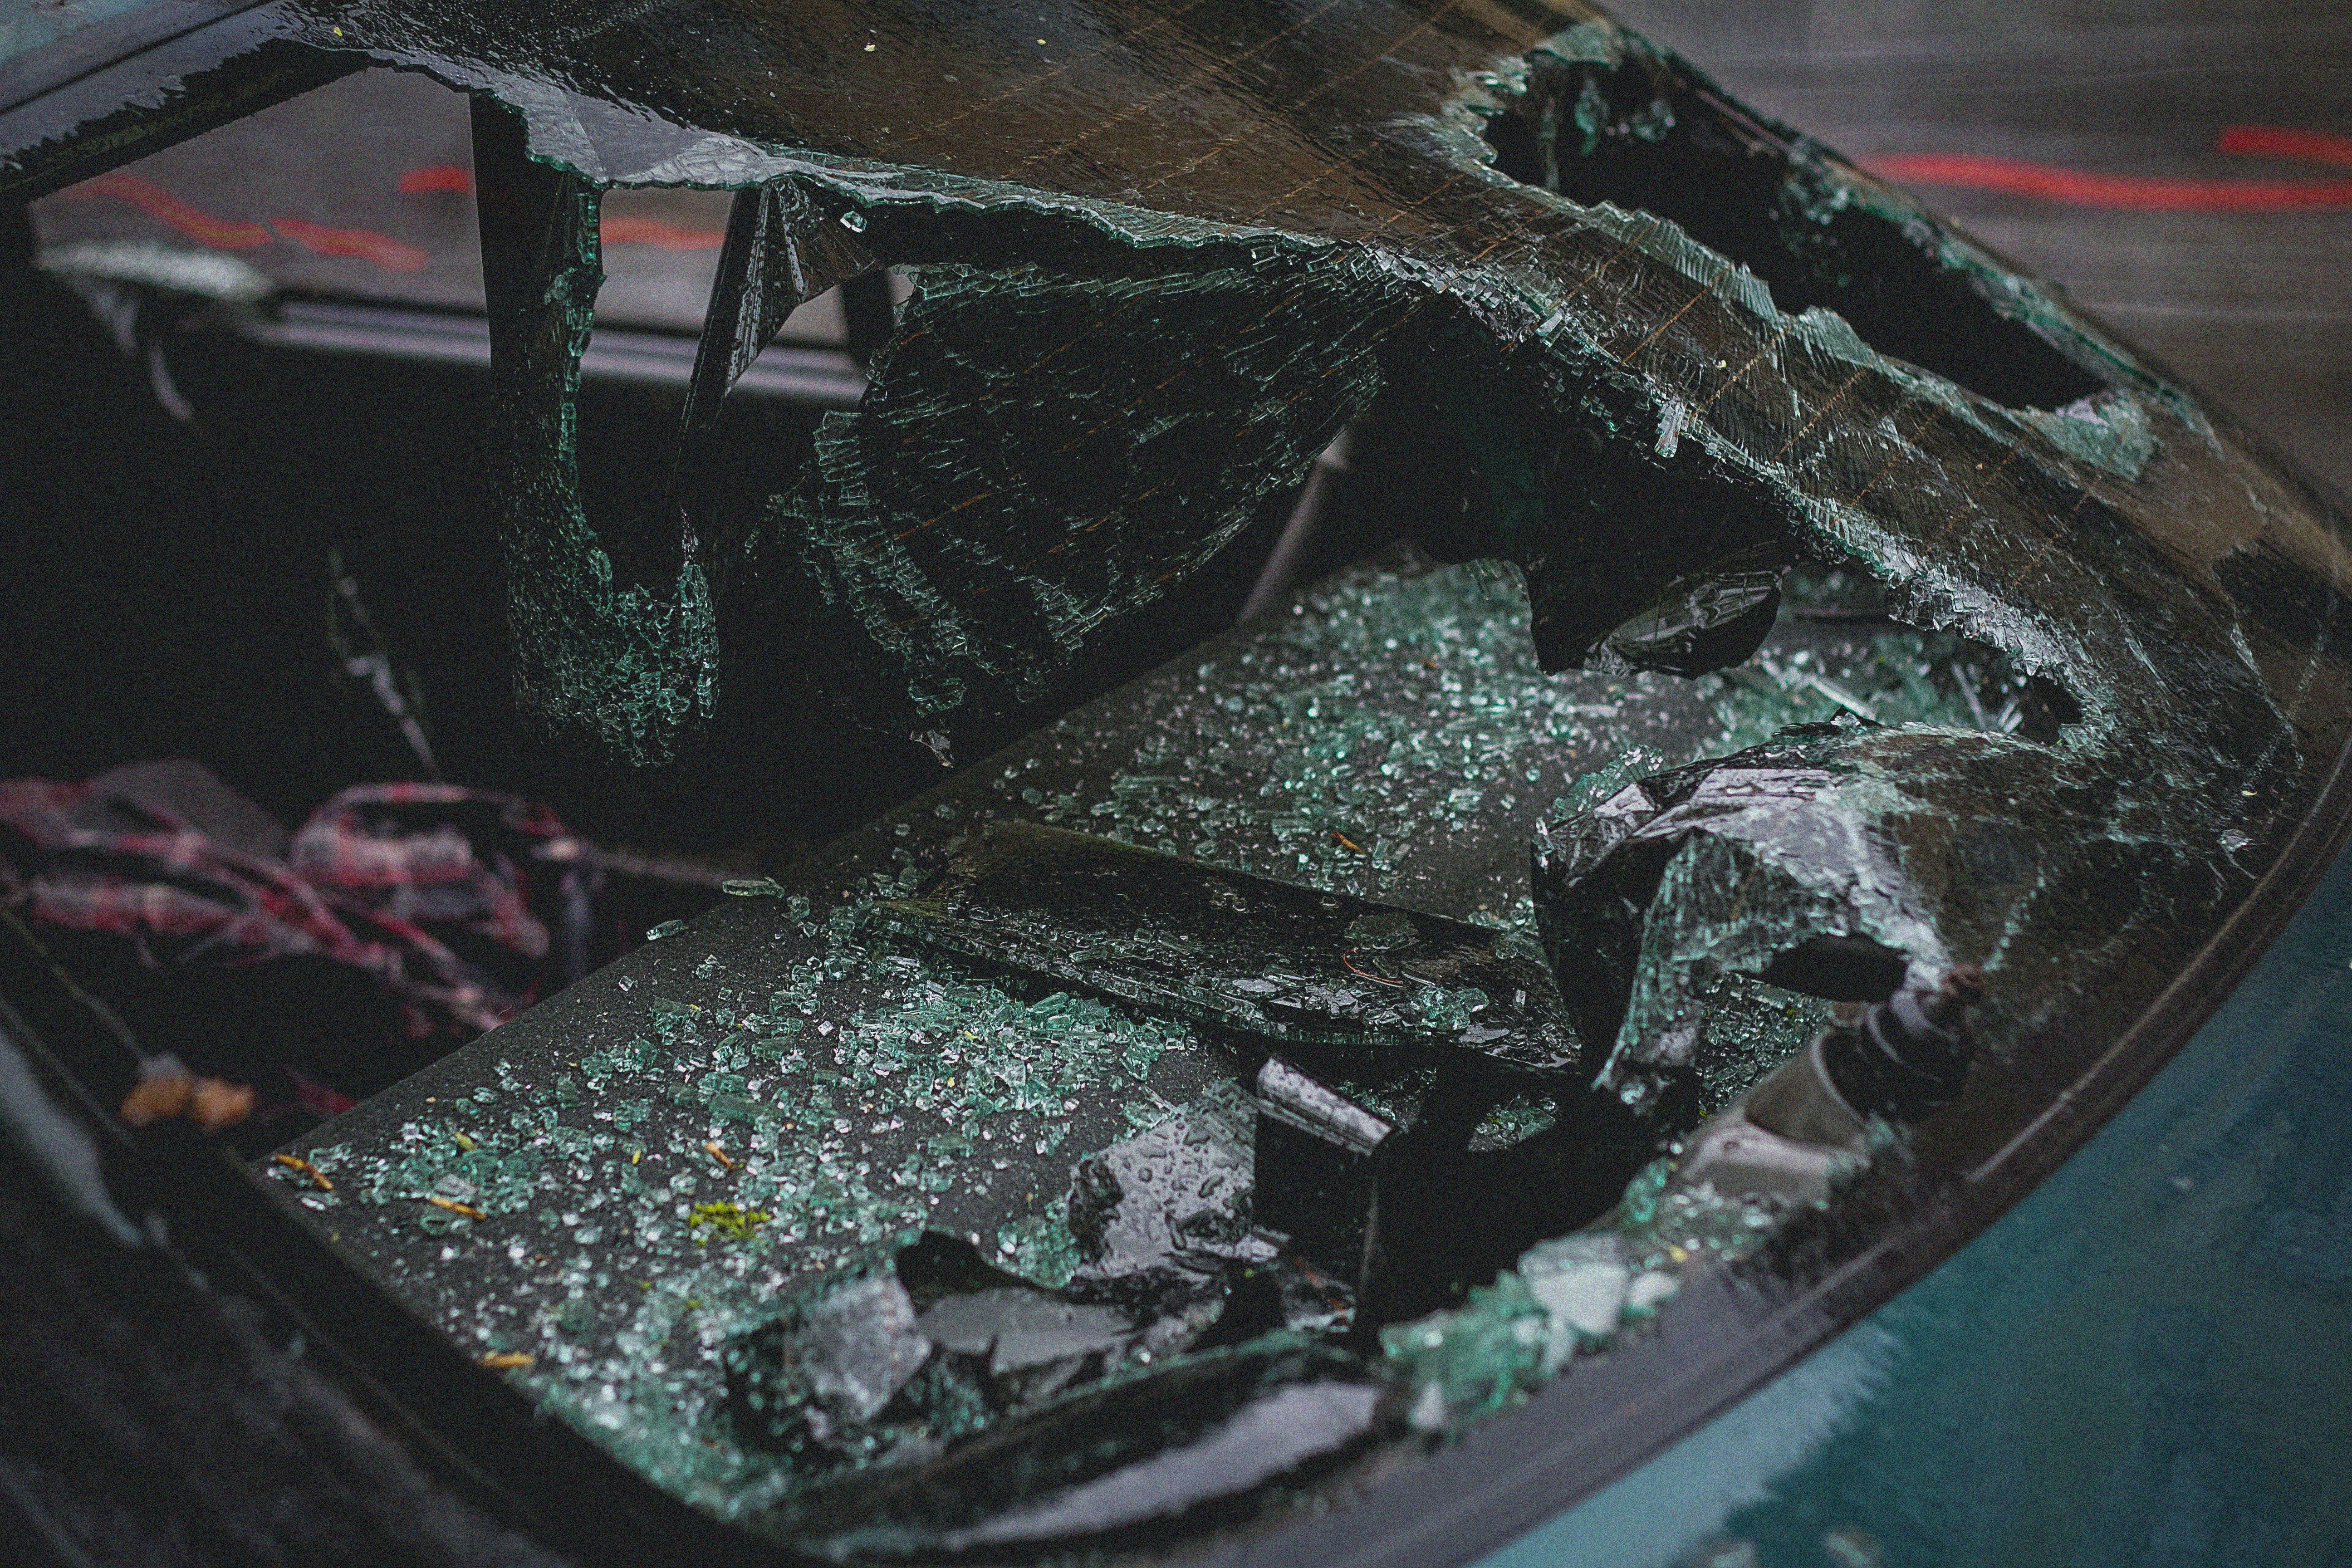 A car's front glass window is damaged after an accident   Photo: Pexels/Artyom Kulakov